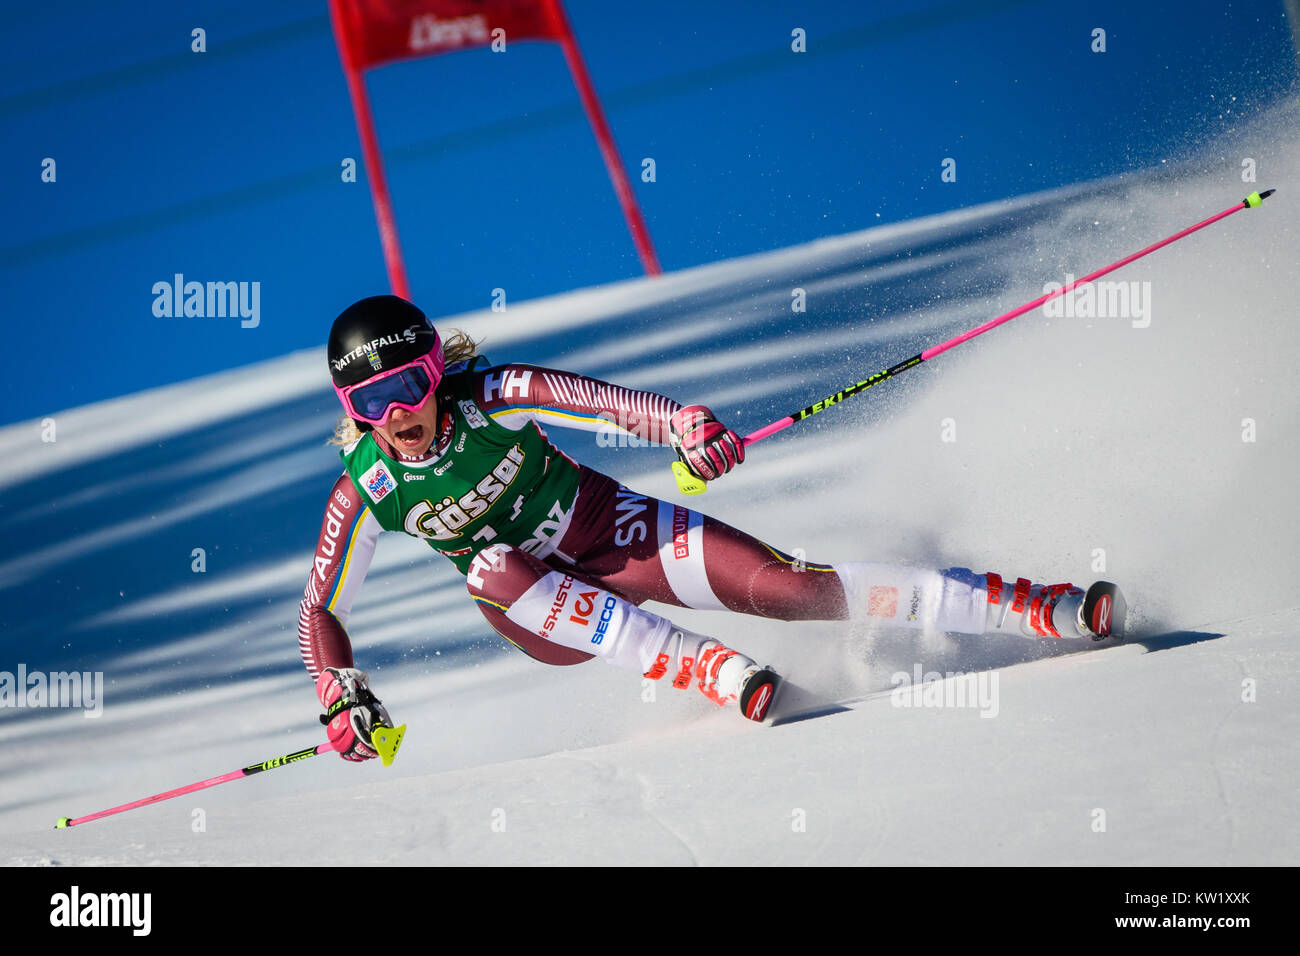 Lienz, Austria. 29th Dec, 2017. Frida Hansdotter of Sweden competes during the FIS World Cup Ladies Giant Slalom - Stock Image